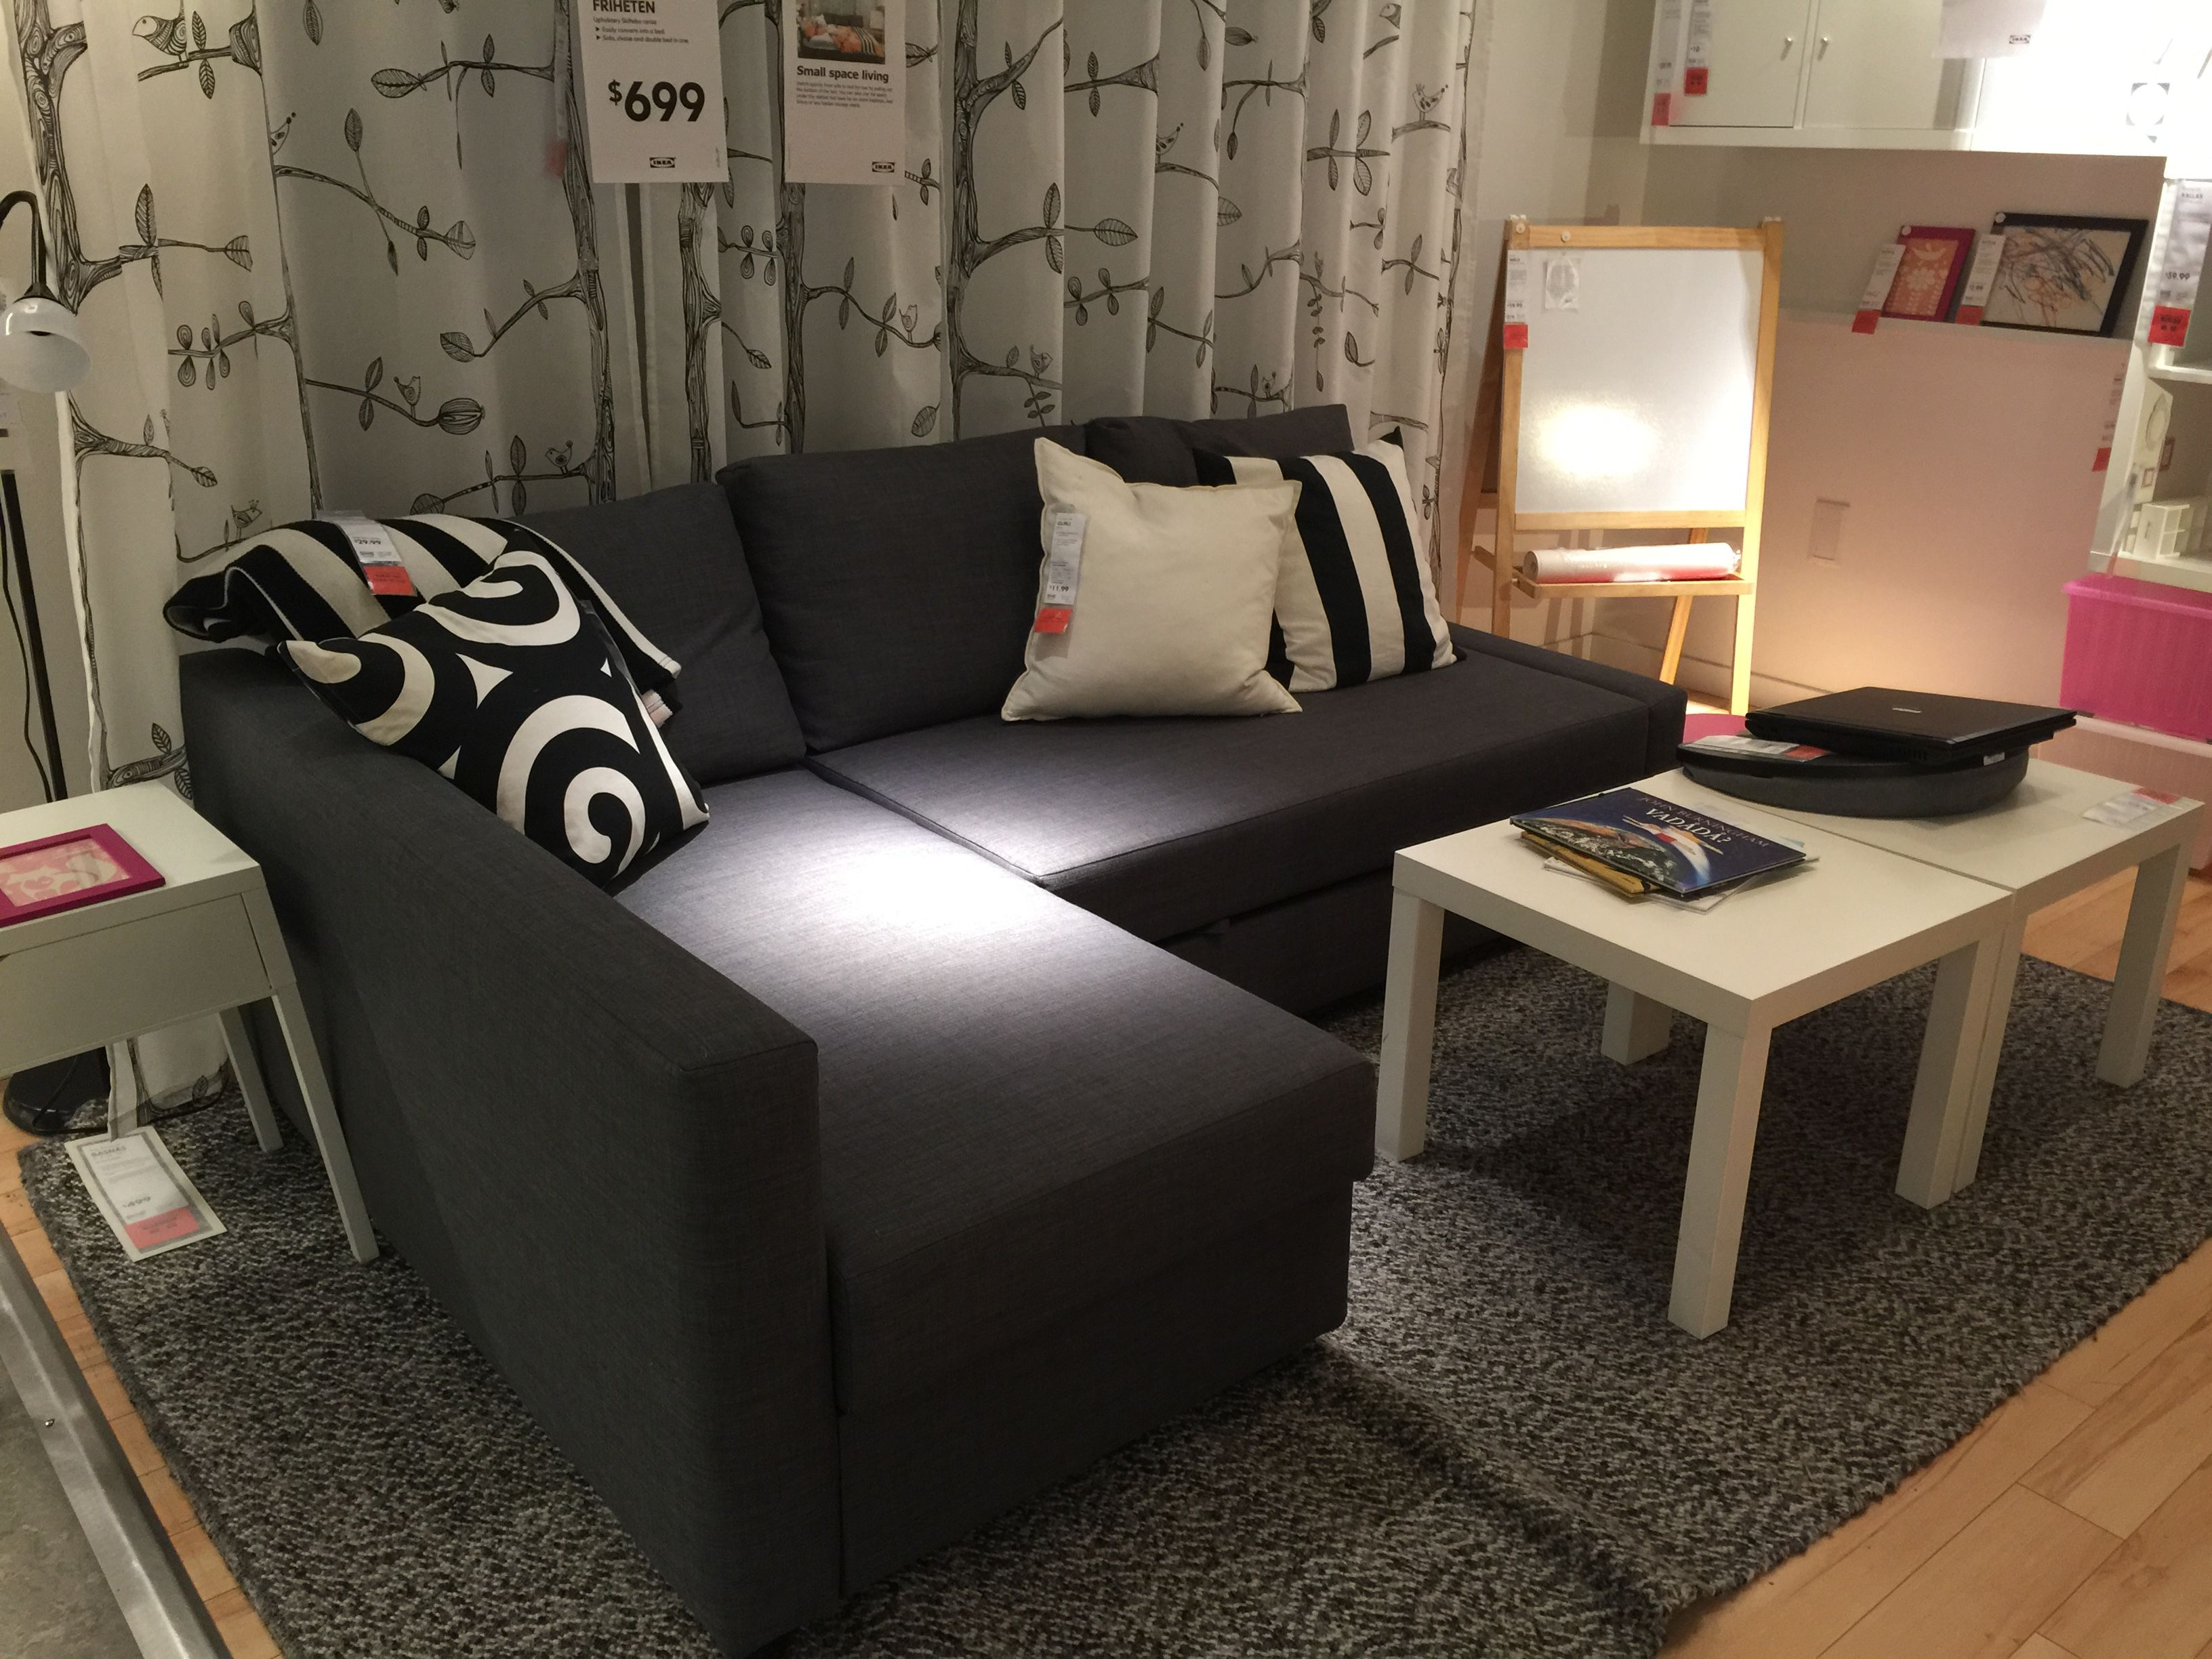 sofa bed 699 friheten dream home pinterest apartments living rooms and apartment ideas. Black Bedroom Furniture Sets. Home Design Ideas